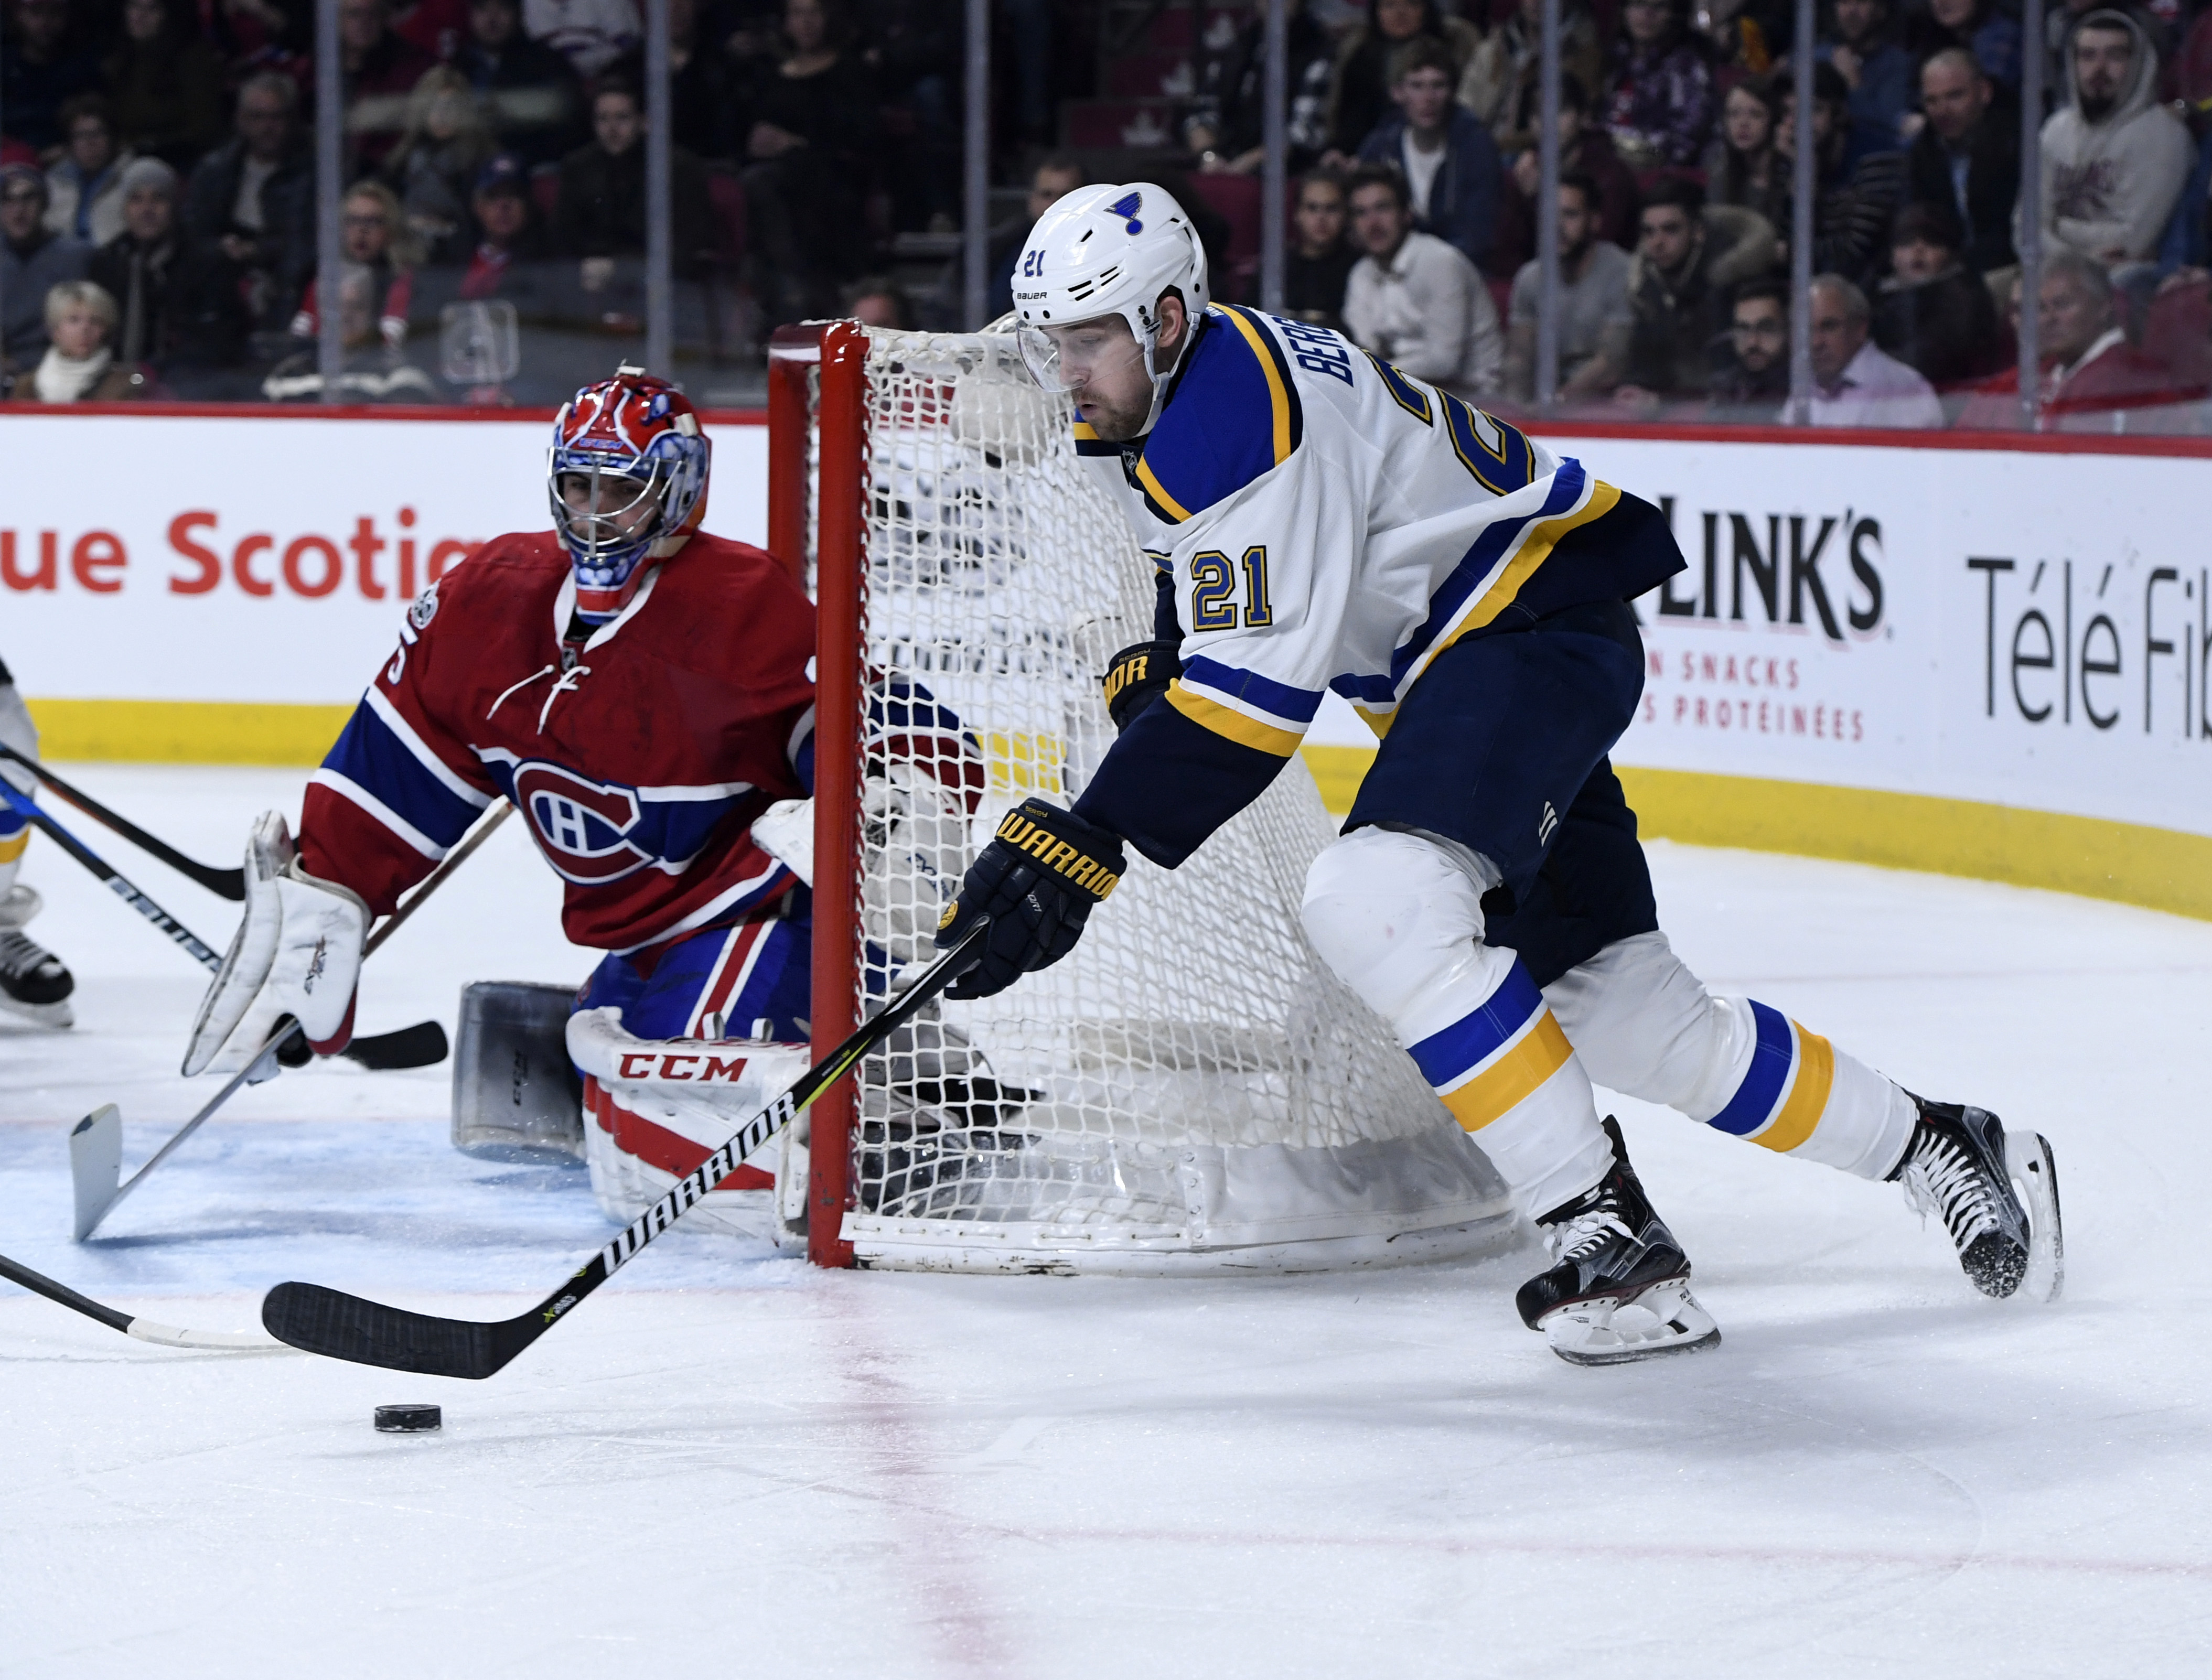 9872230-nhl-st.-louis-blues-at-montreal-canadiens